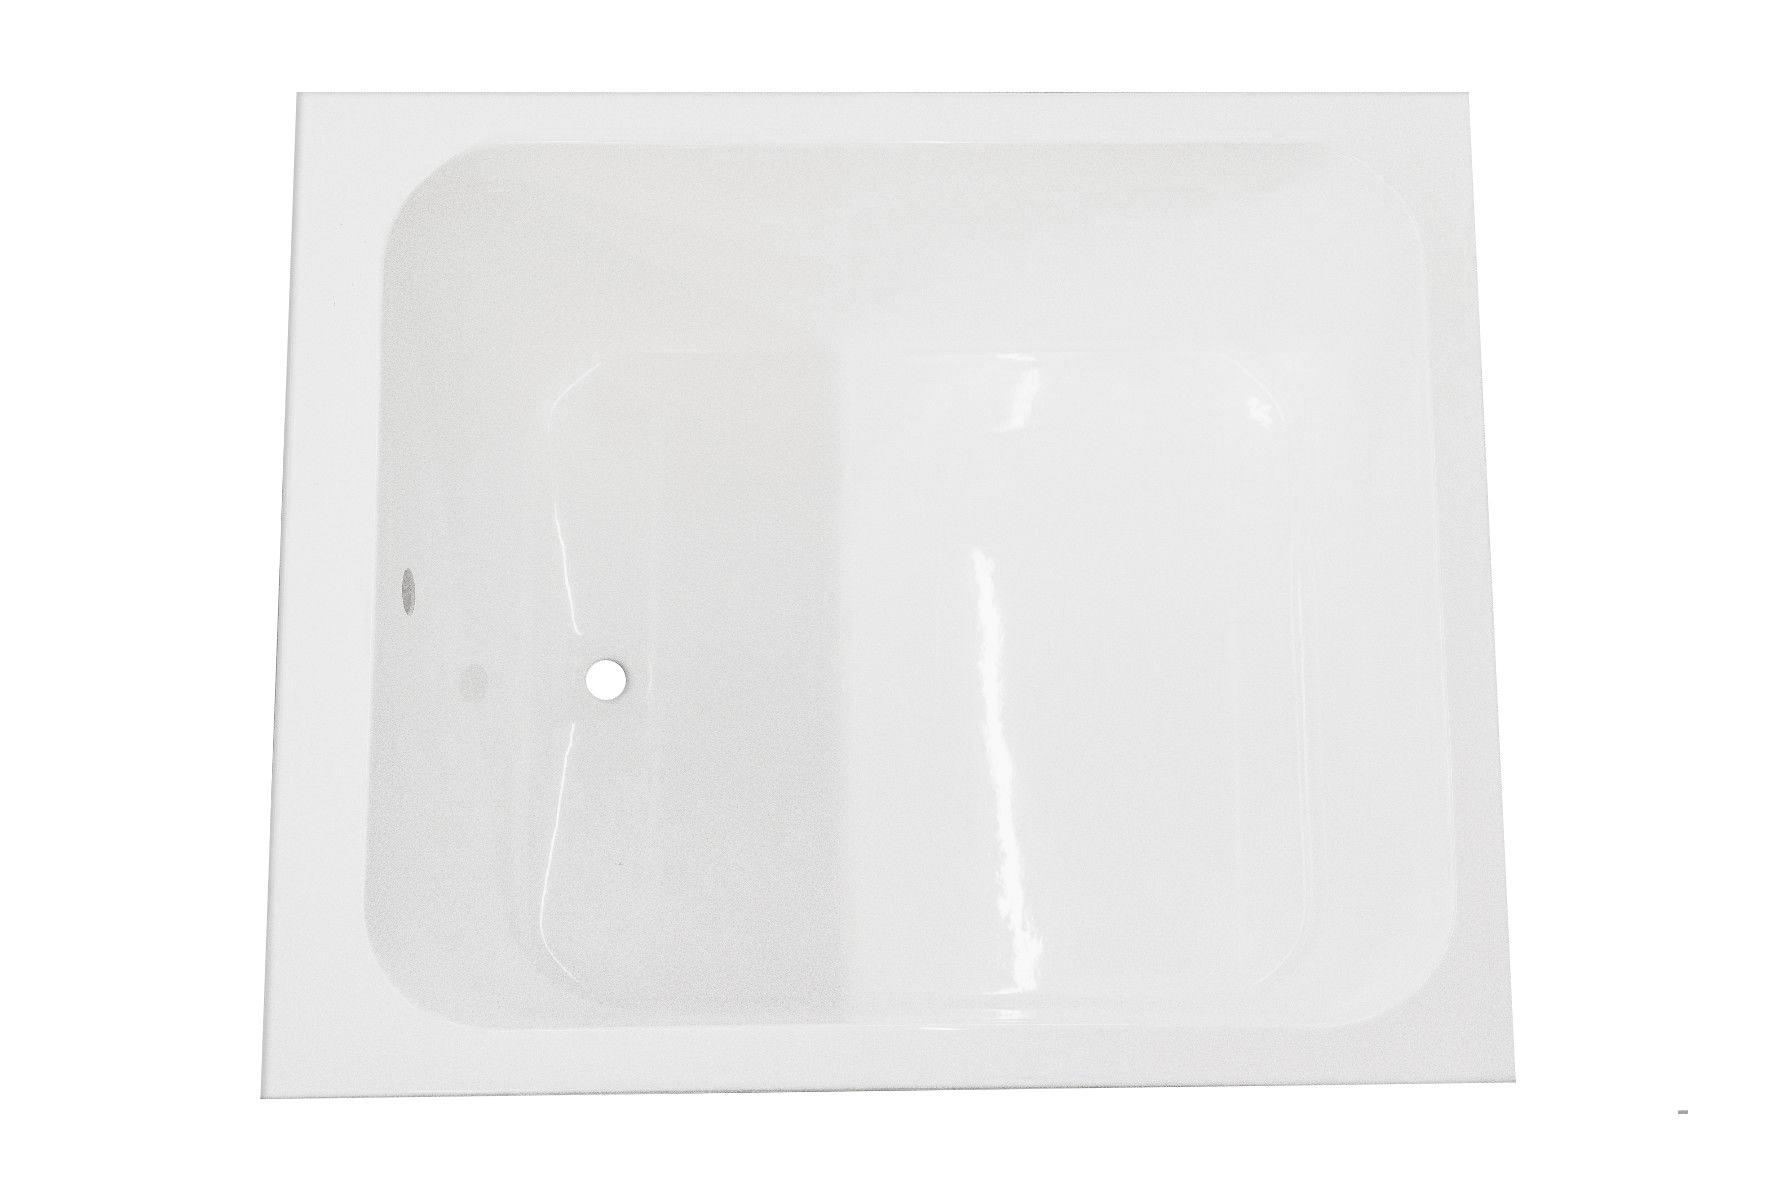 Oriental deep soaking japanese style bath 3 sizes for How deep is a normal bathtub